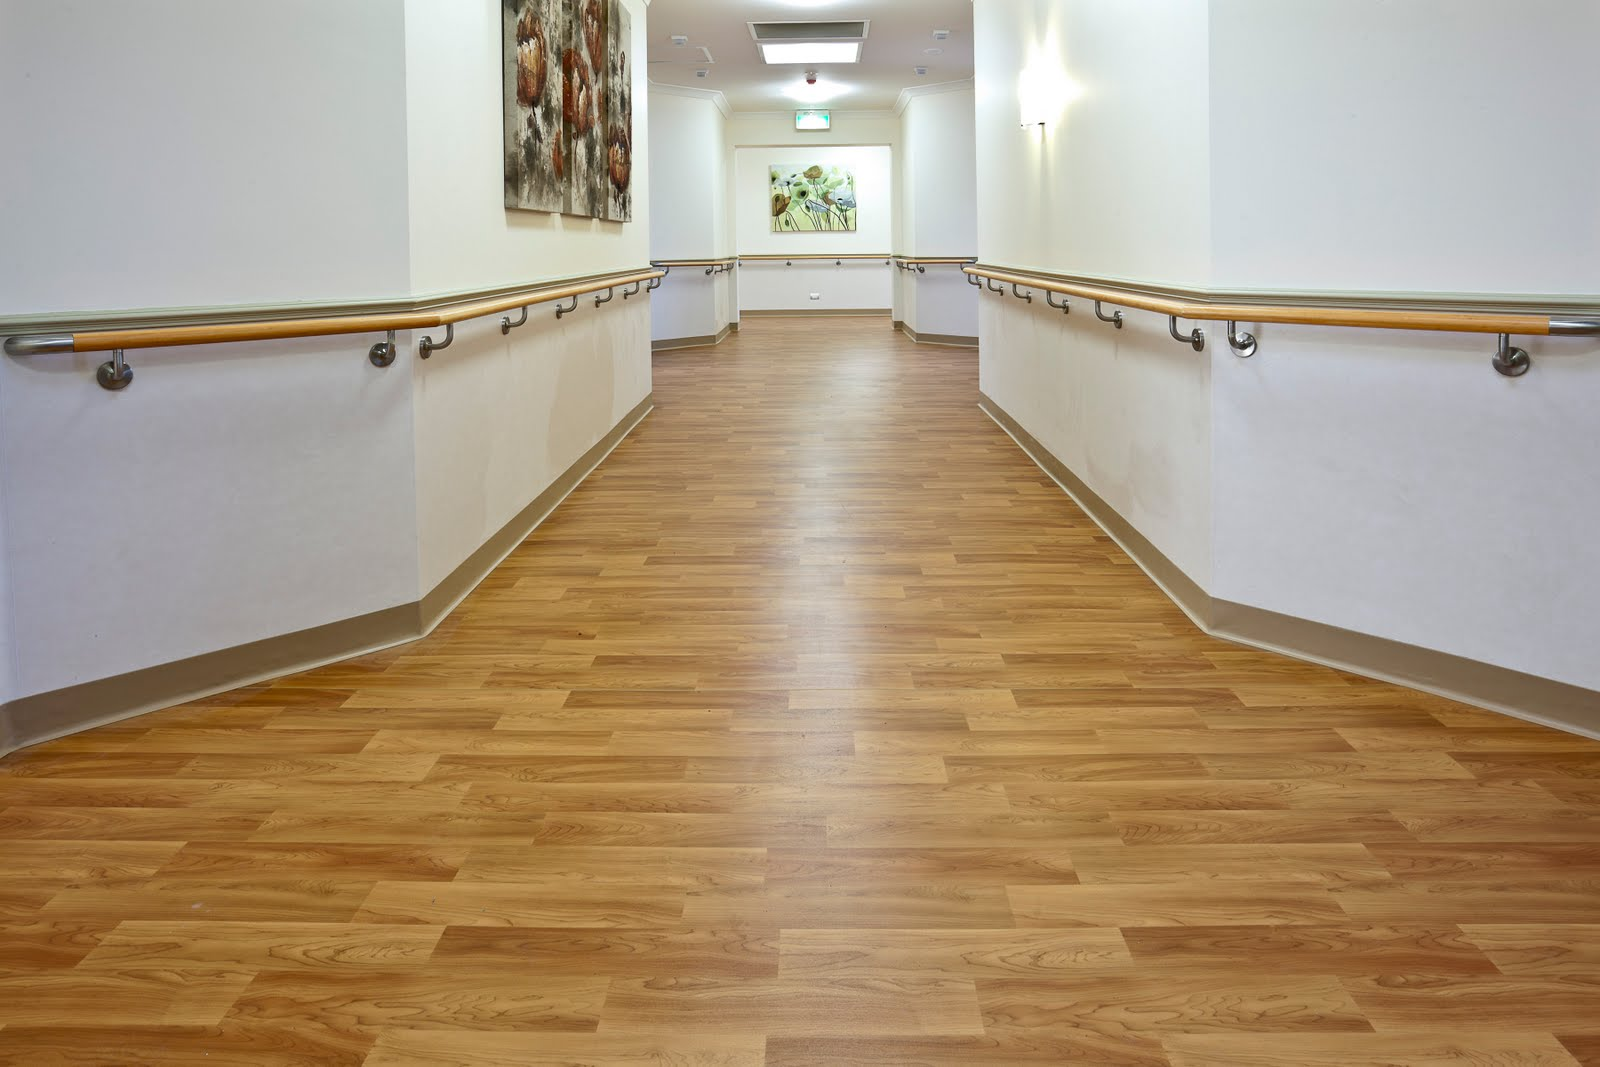 Vinyl Flooring Pros Cons Types HomeAdvisor - Dangers of vinyl flooring